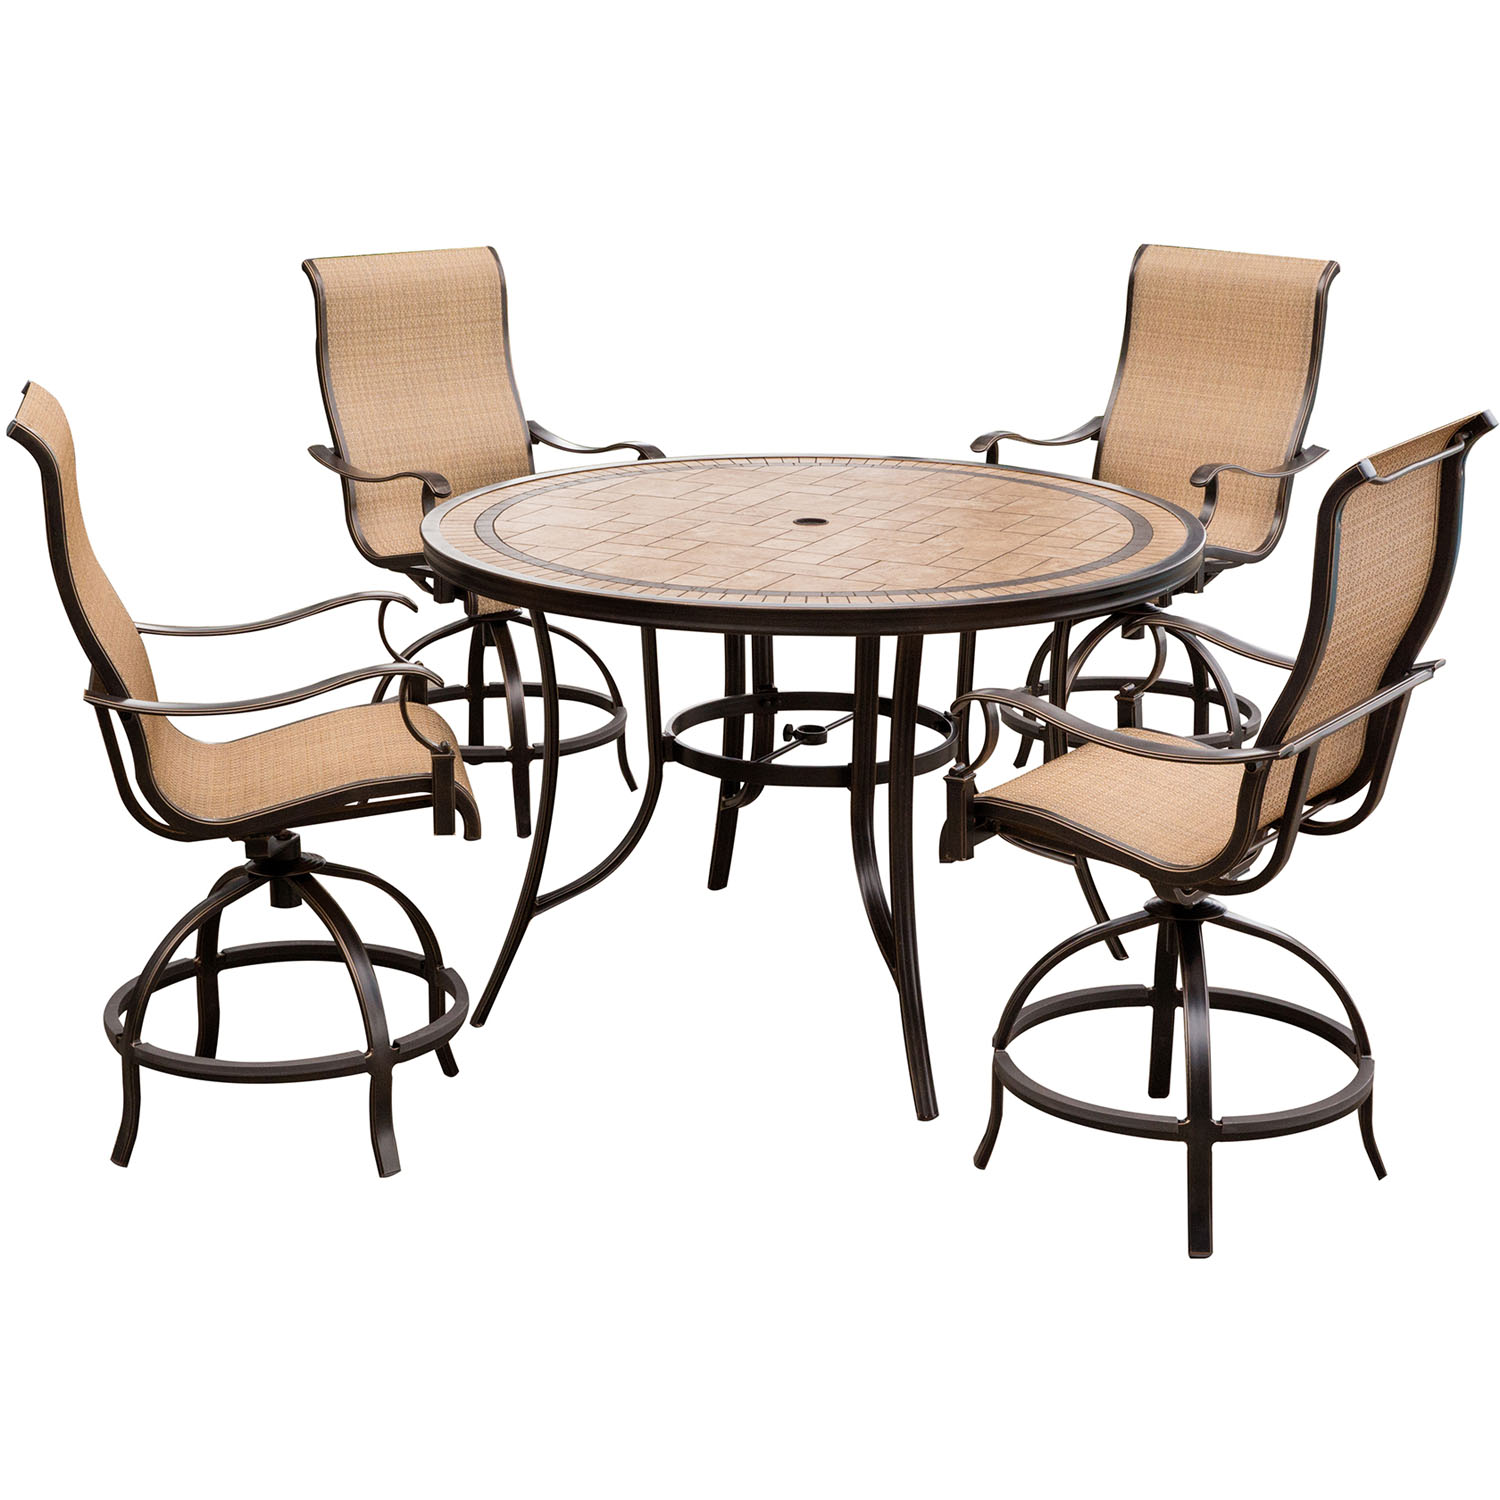 11% off. Monaco 5-Piece High-Dining Set ... - Monaco 5-Piece High-Dining Set With 56 In. Tile-top Table - MONDN5PCBR